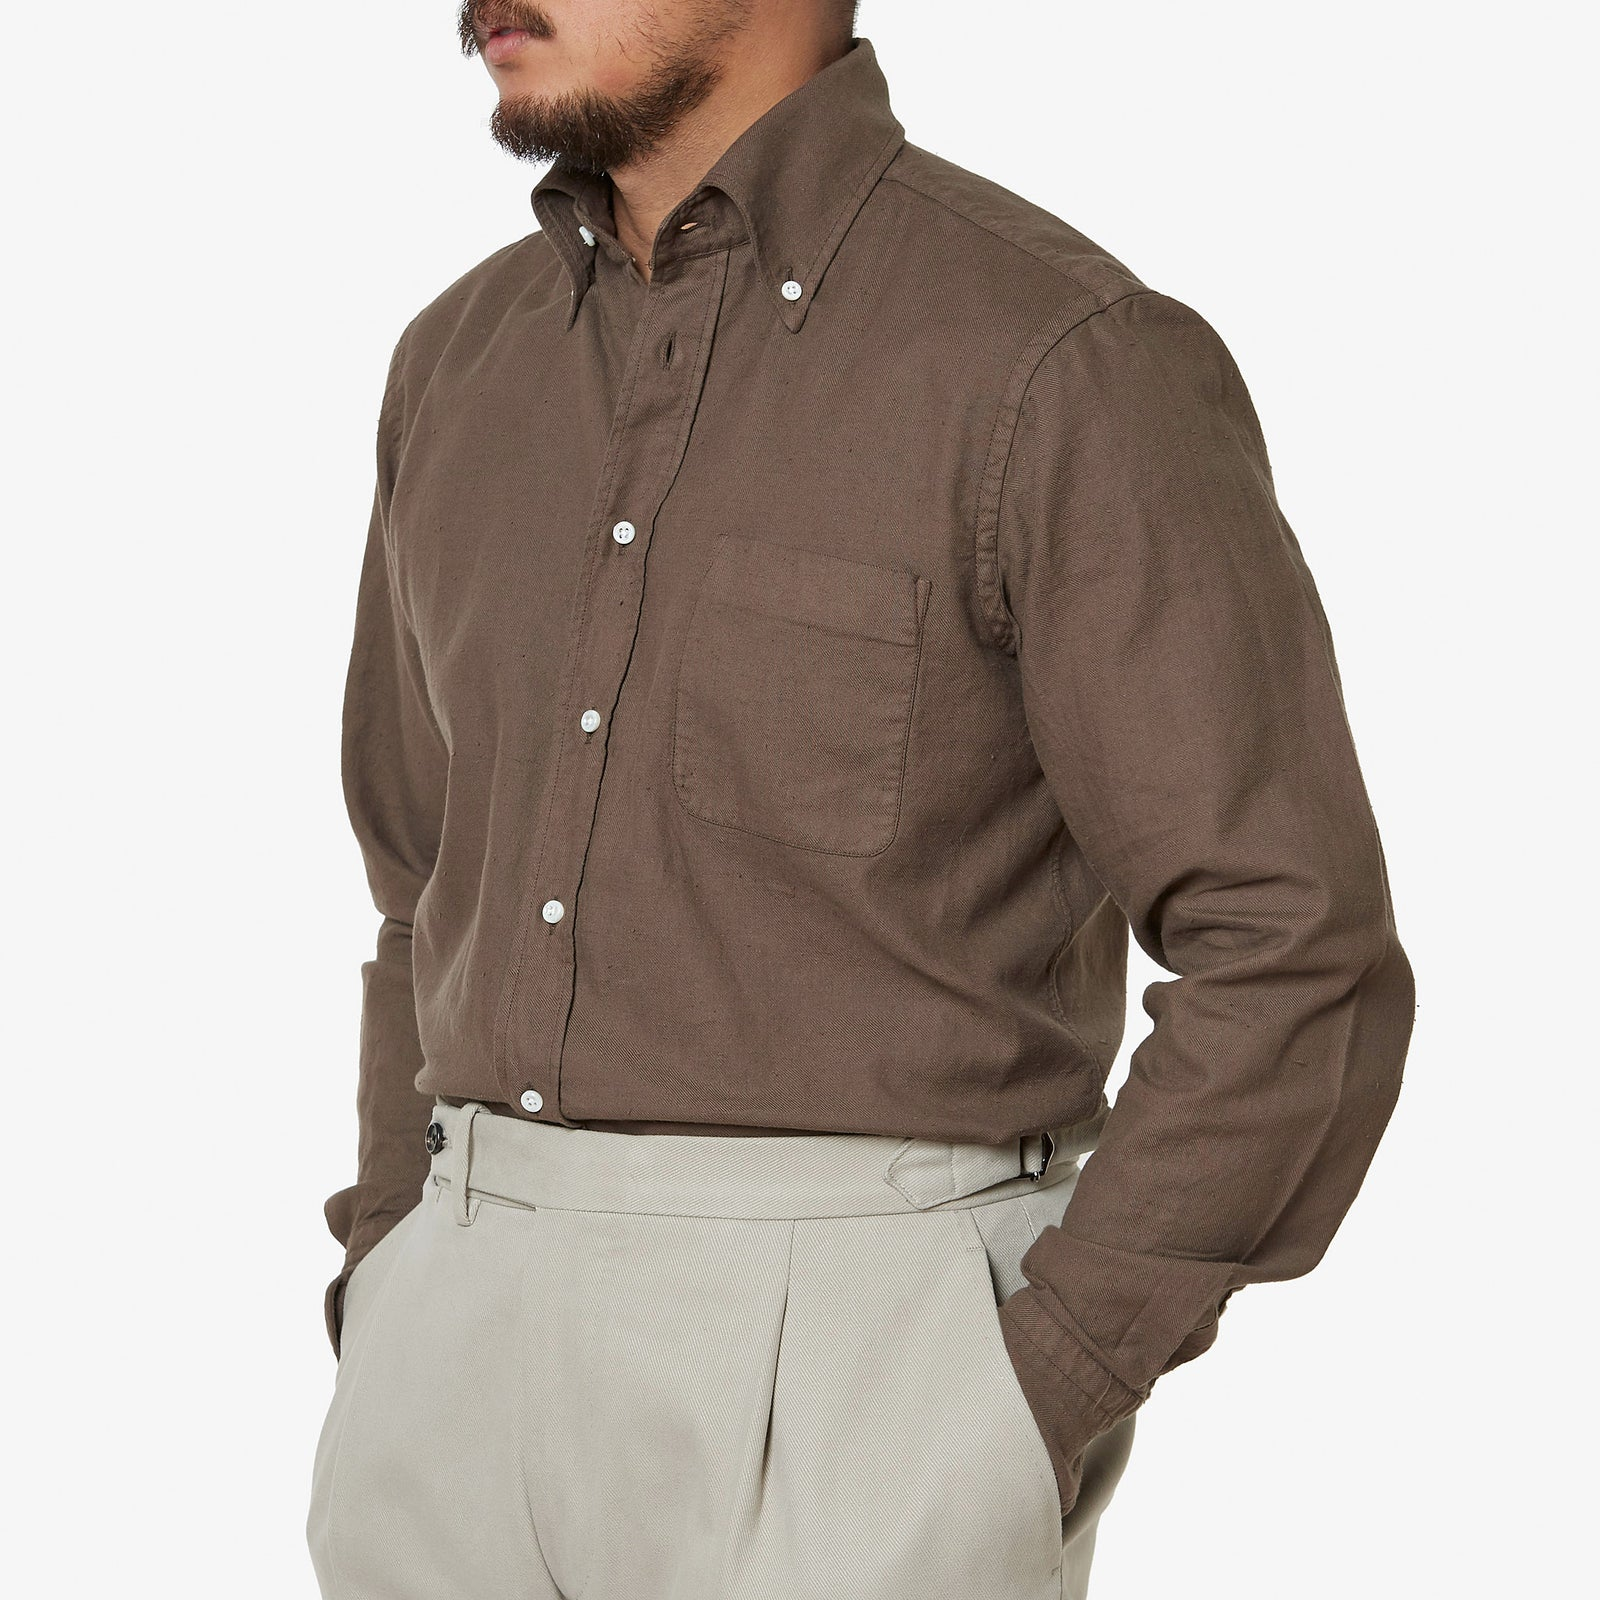 Button Down Sport Shirt Slub Cotton Garment Dye Brown